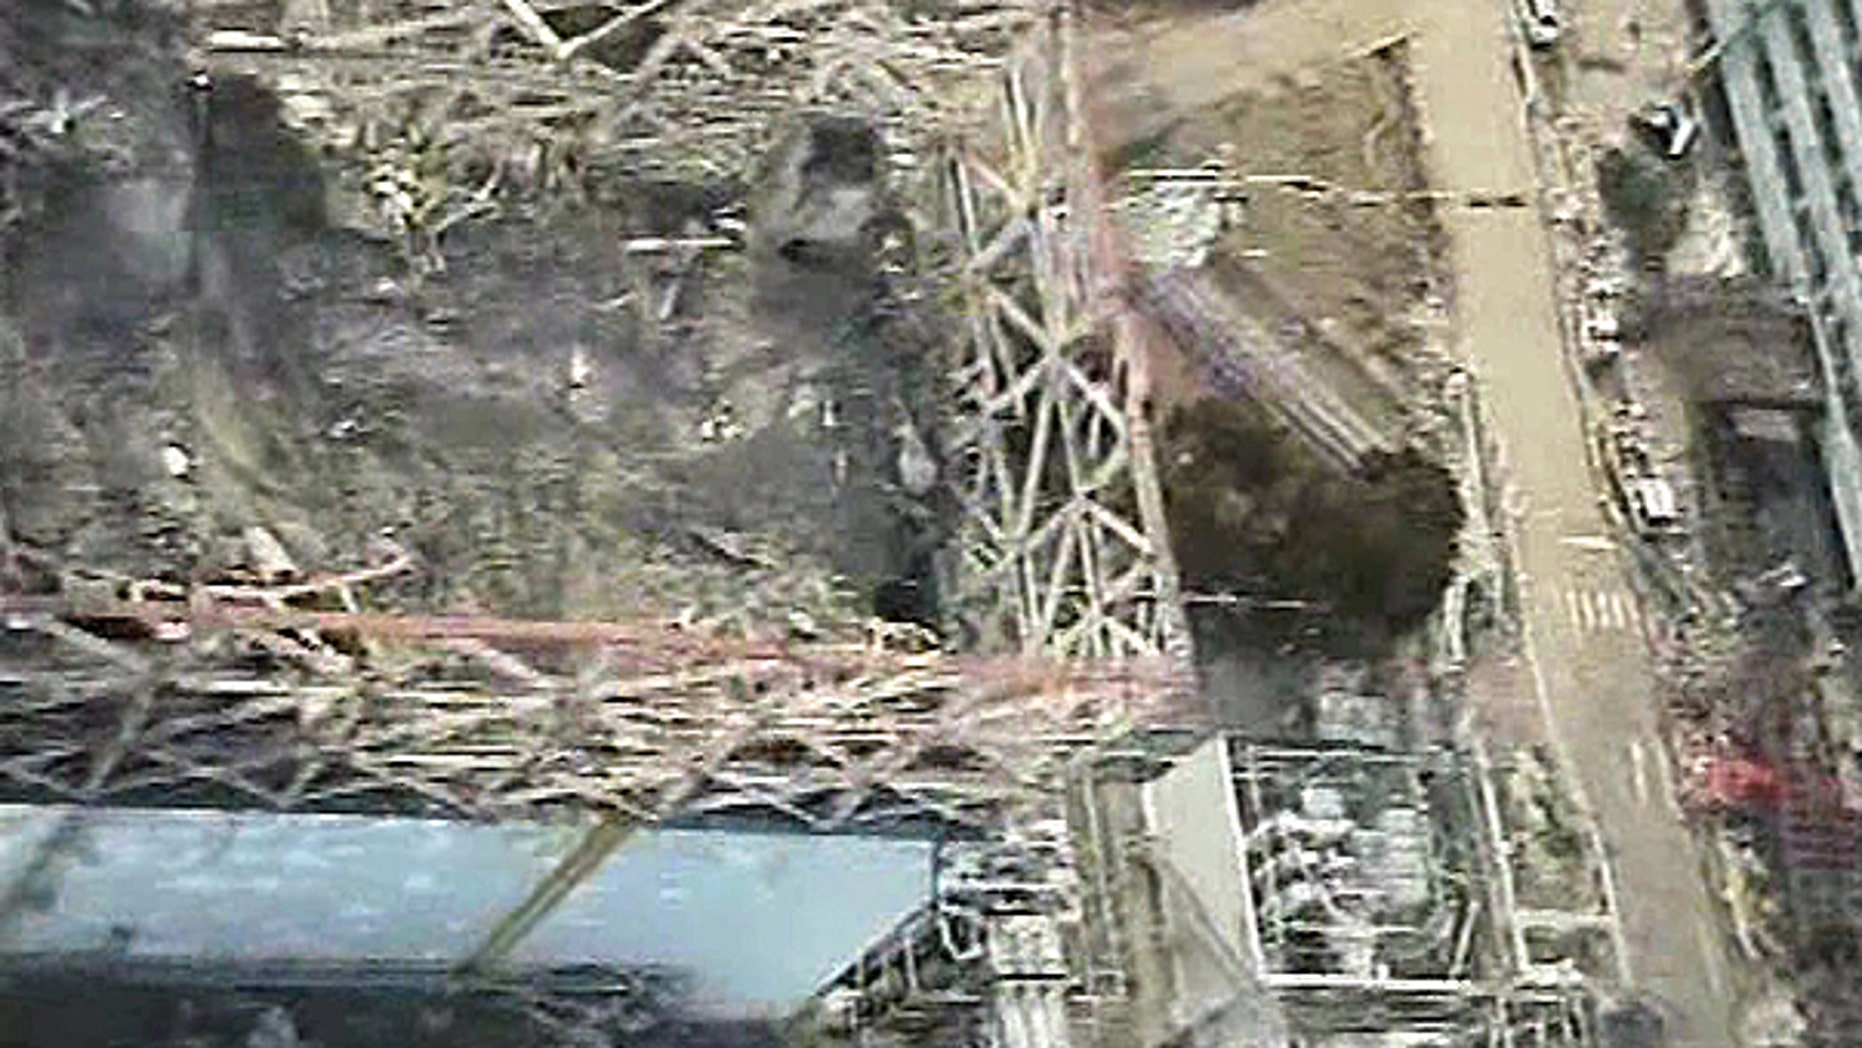 April 10: Image taken by T-Hawk drone aircraft and released by Tokyo Electric Power Co. (TEPCO) shows the damaged reactor building of Unit 1 of the tsunami-crippled Fukushima Dai-ichi nuclear power plant in Okuma, Fukushima Prefecture, northeastern Japan.